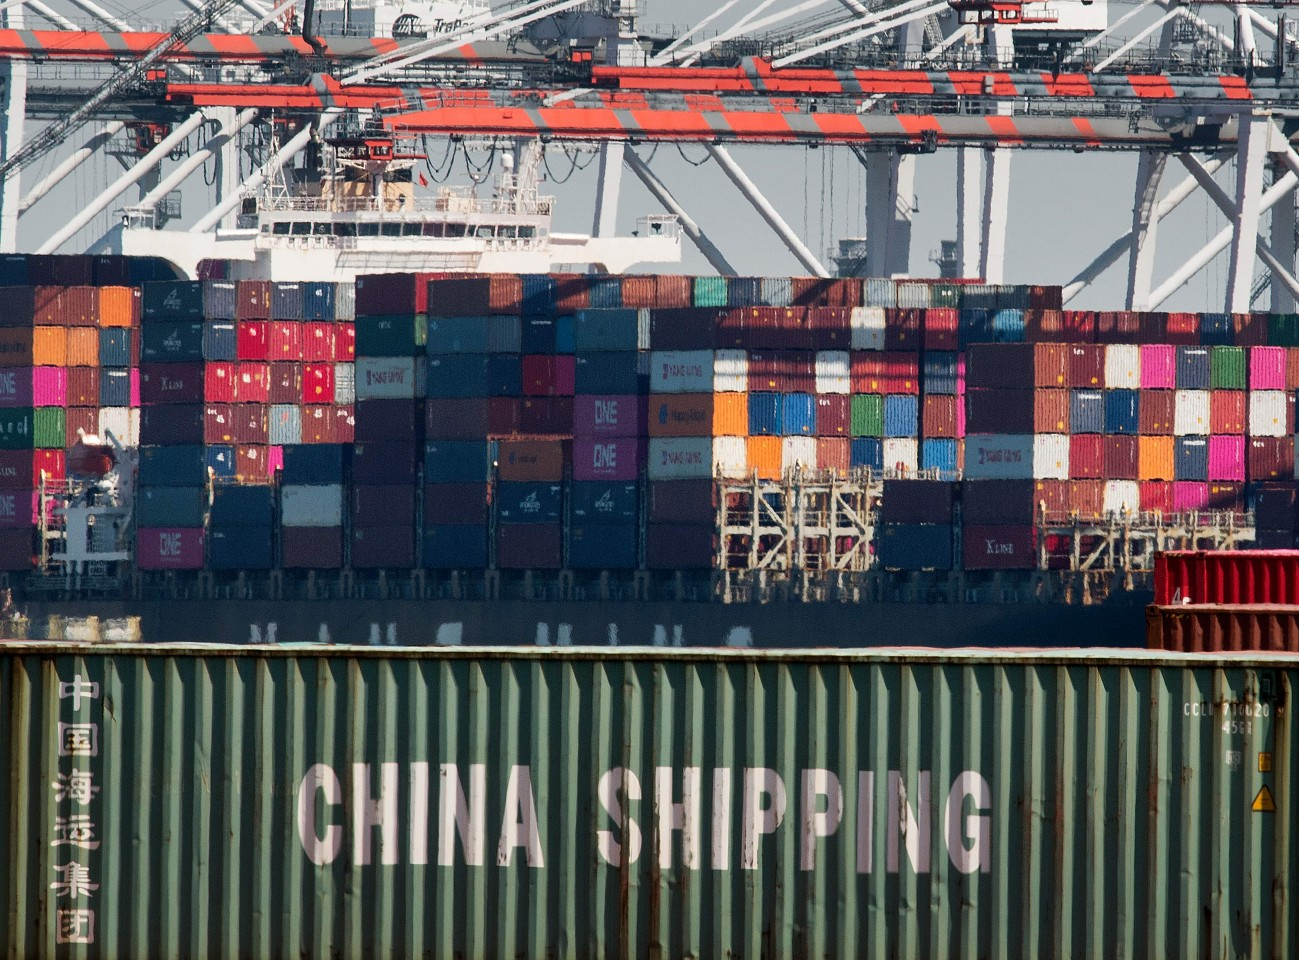 The US did not completely remove tariffs imposed on Chinese products. This photo shows shipping containers from China and other Asian countries unloaded at the Port of Los Angeles. (Mark Ralston/AFP)